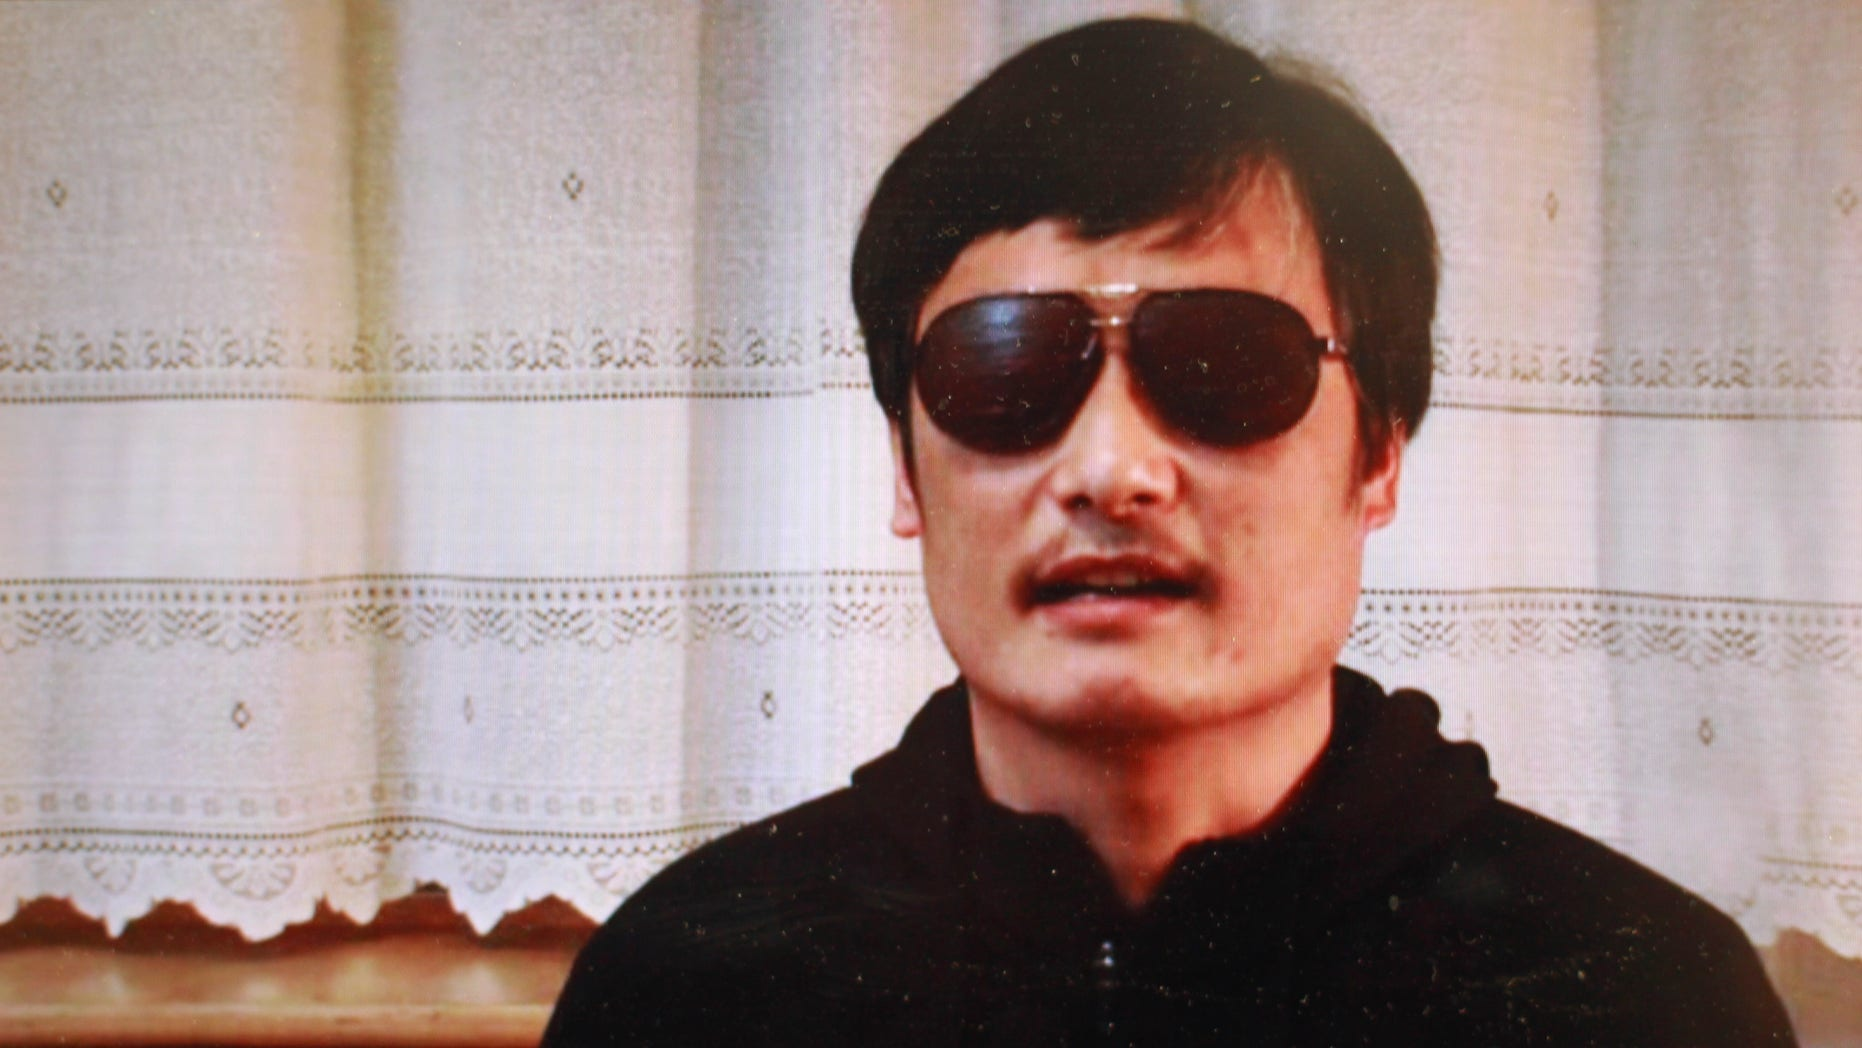 This file image made from video posted to YouTube April 27, 2012 by by overseas Chinese news site Boxun.com, shows blind legal activist Chen Guangcheng.